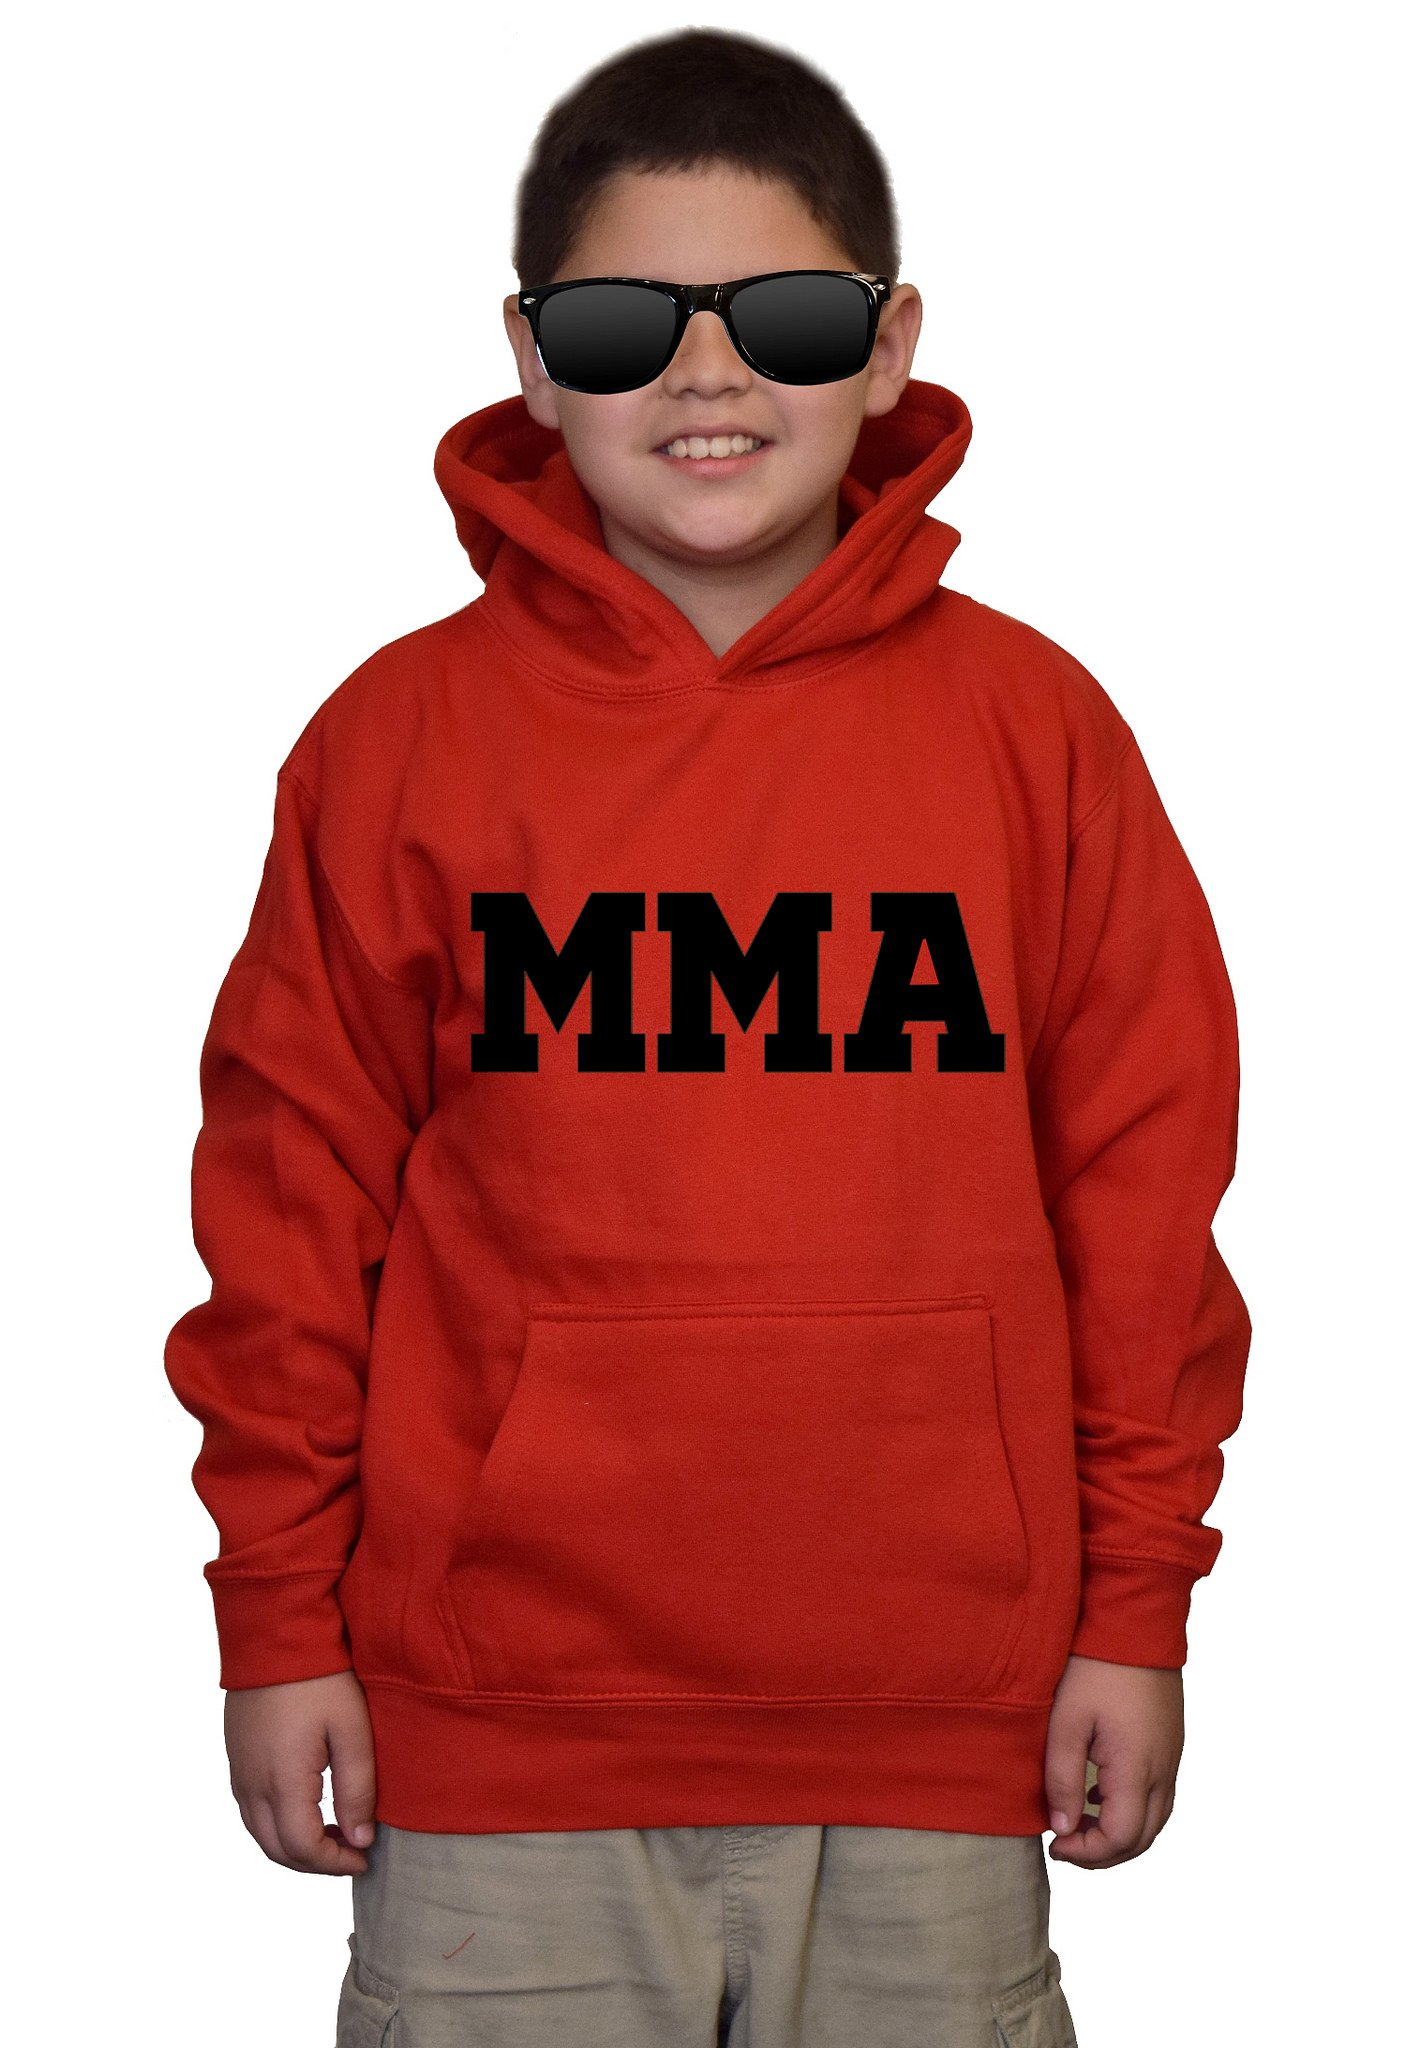 Youth MMA Mixed Martial Arts V441 Red kids Sweatshirt Hoodie Small